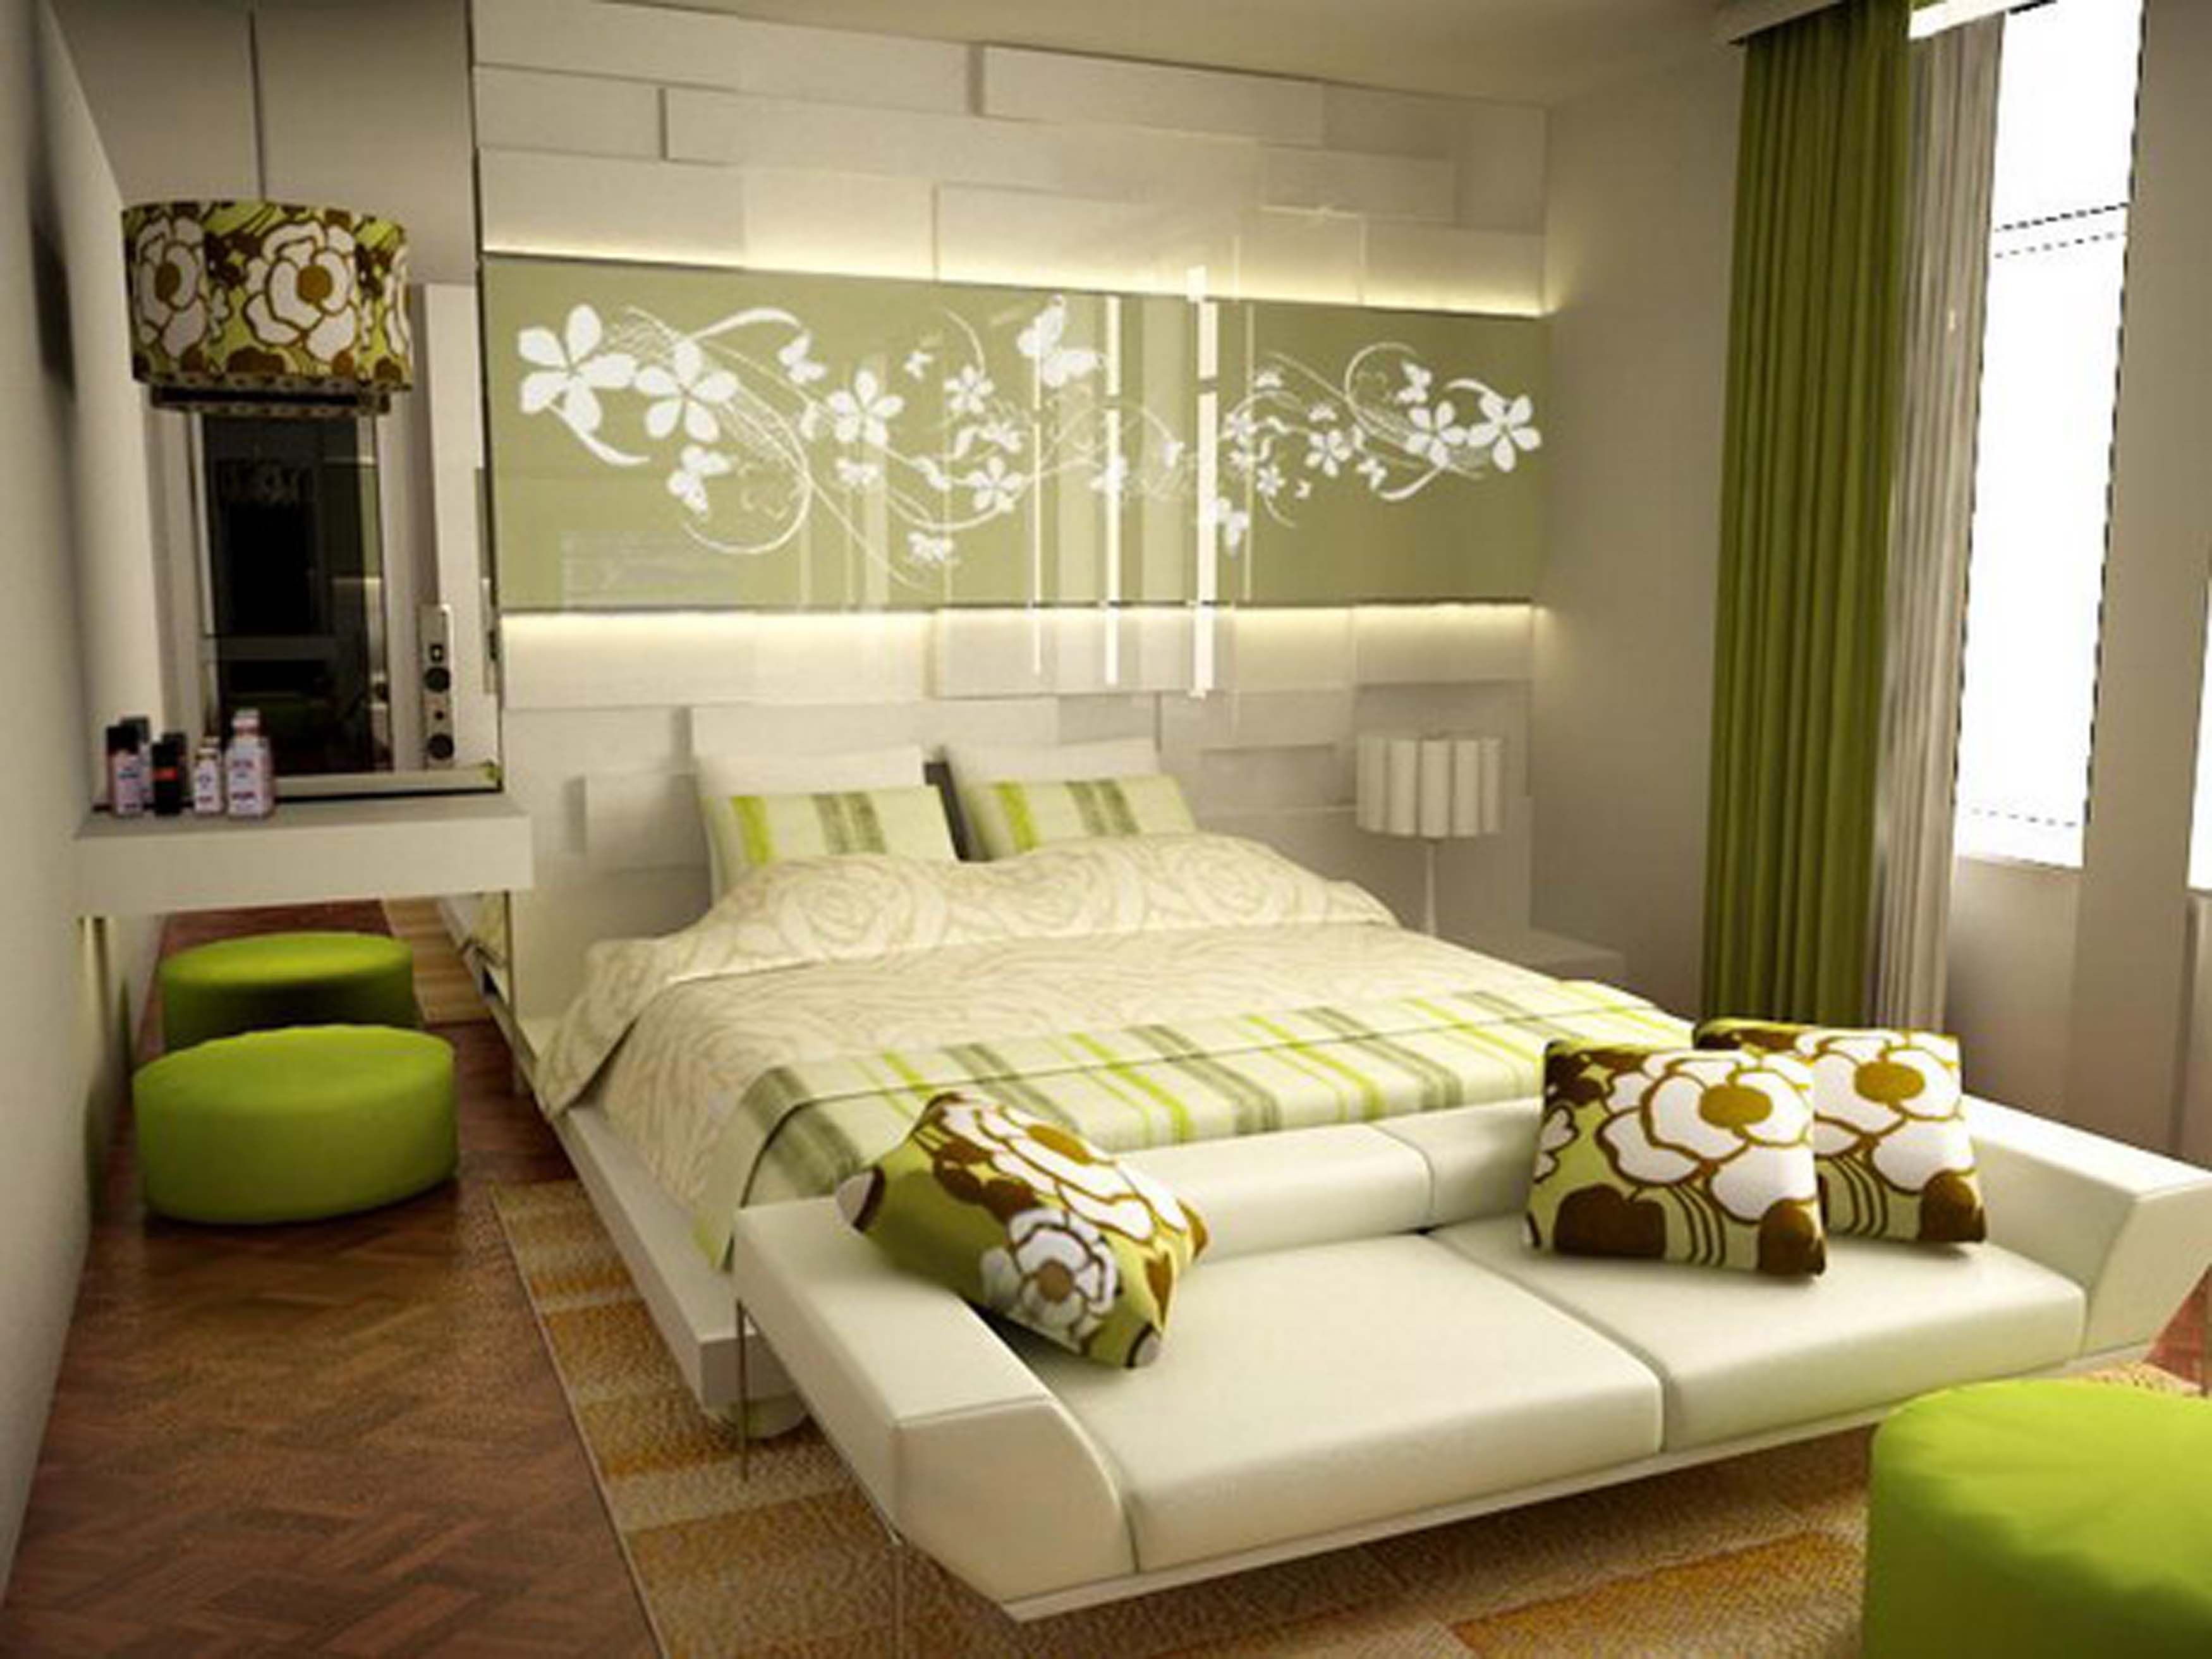 Chic Green Curtains Windows And Sweet Green Cushions On White ...